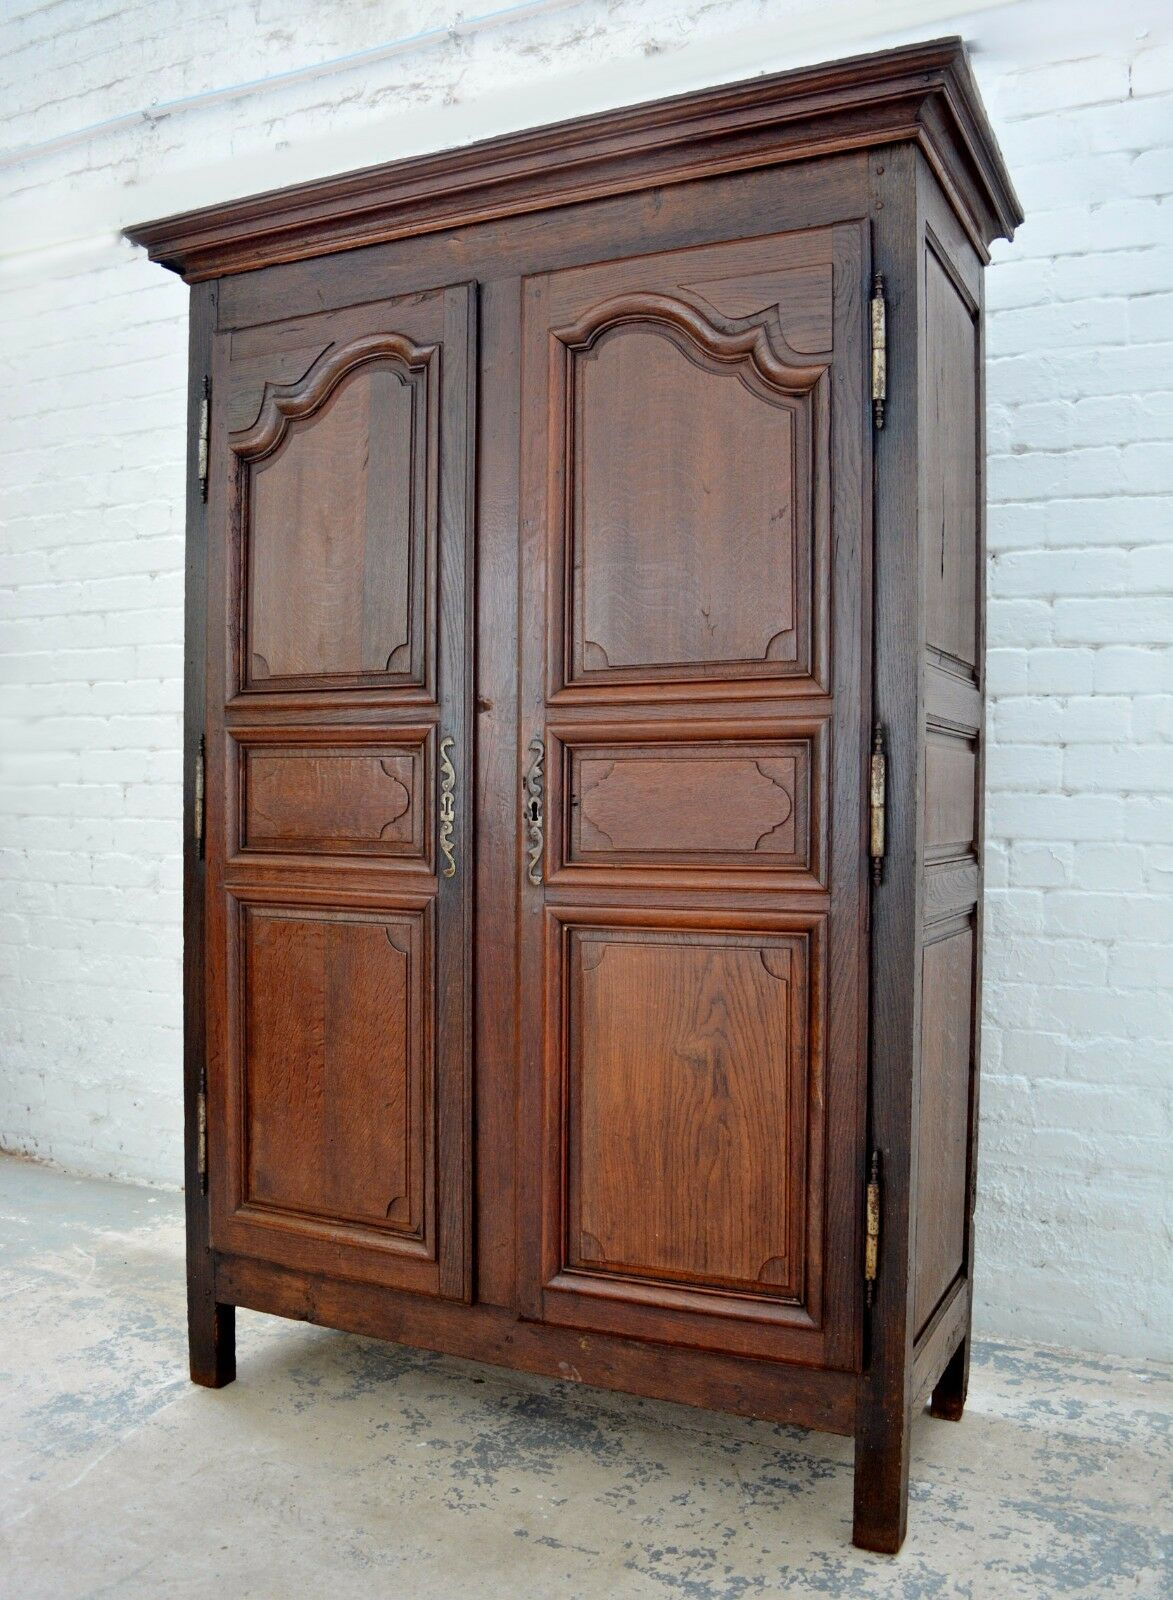 Antique 19th century Period Oak French Louis style Armoire / wardrobe